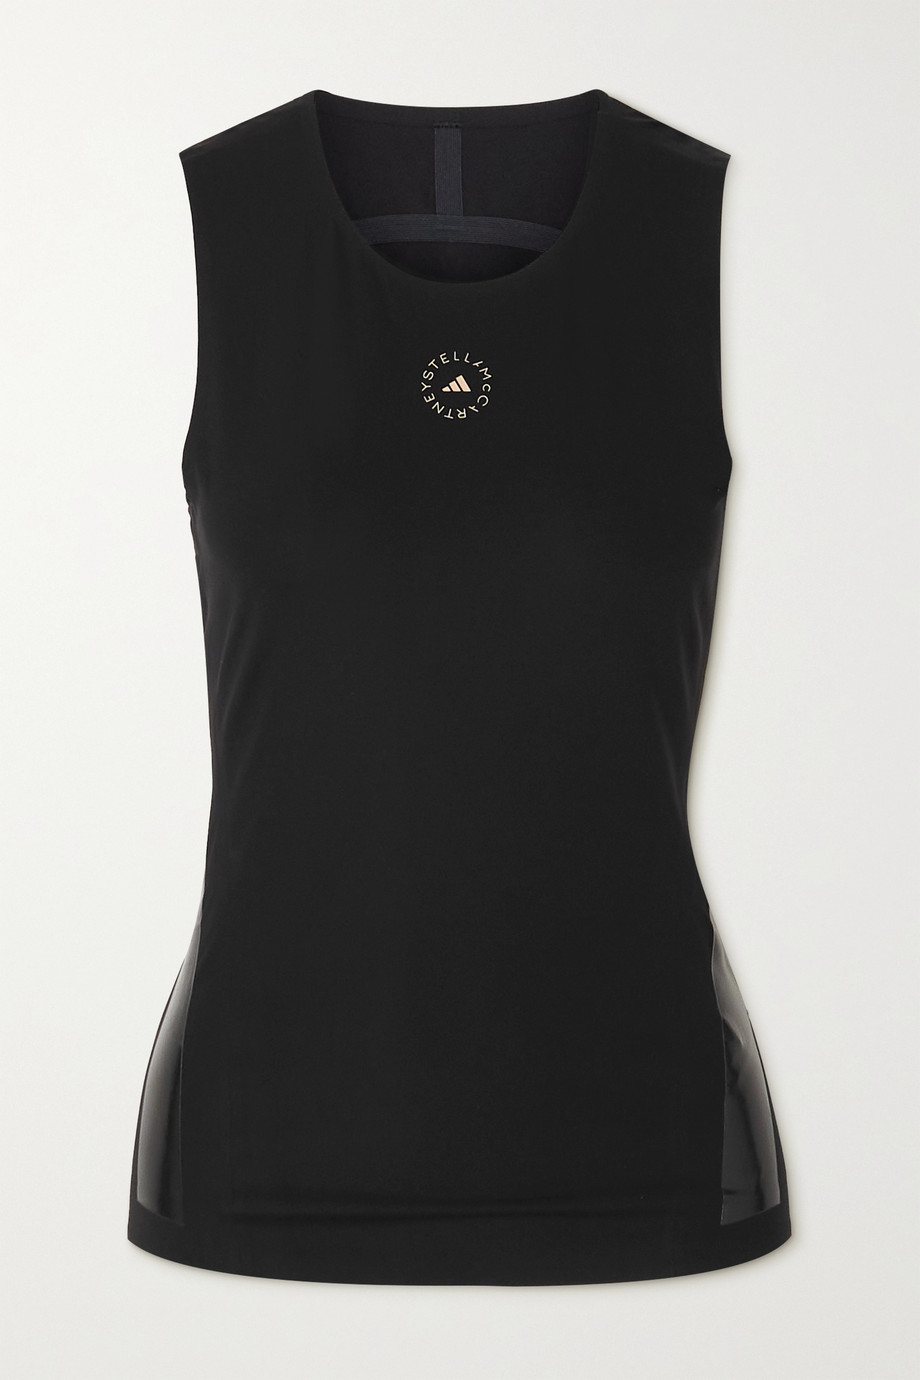 adidas by Stella McCartney Support Core printed recycled stretch tank